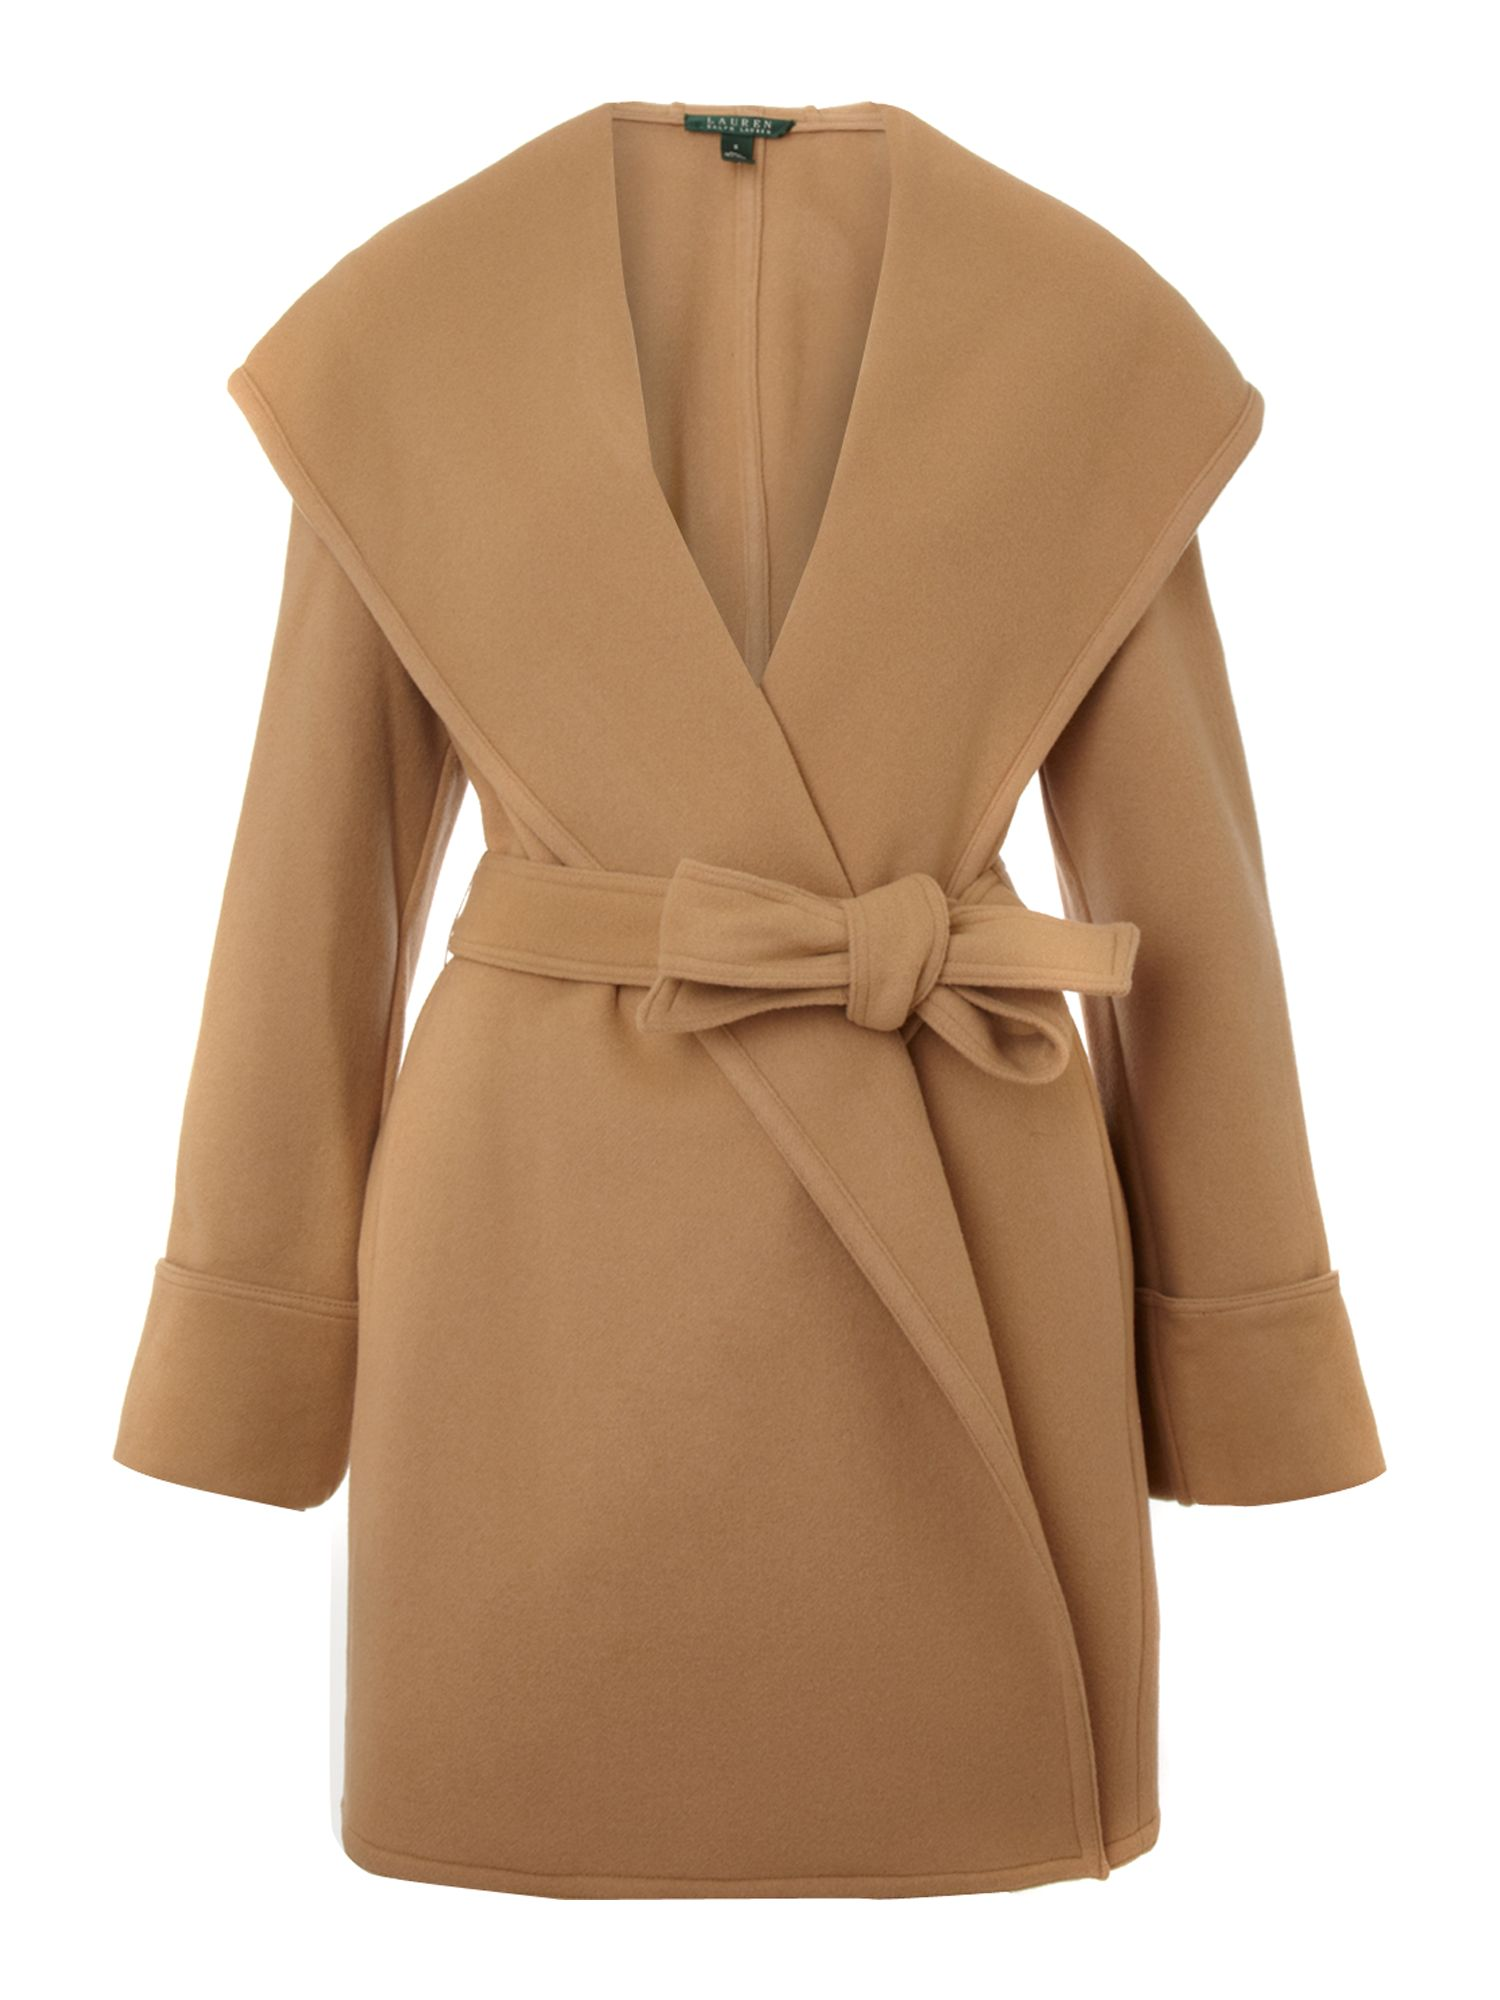 Lauren by ralph lauren Shale Wrap Coat in Natural | Lyst